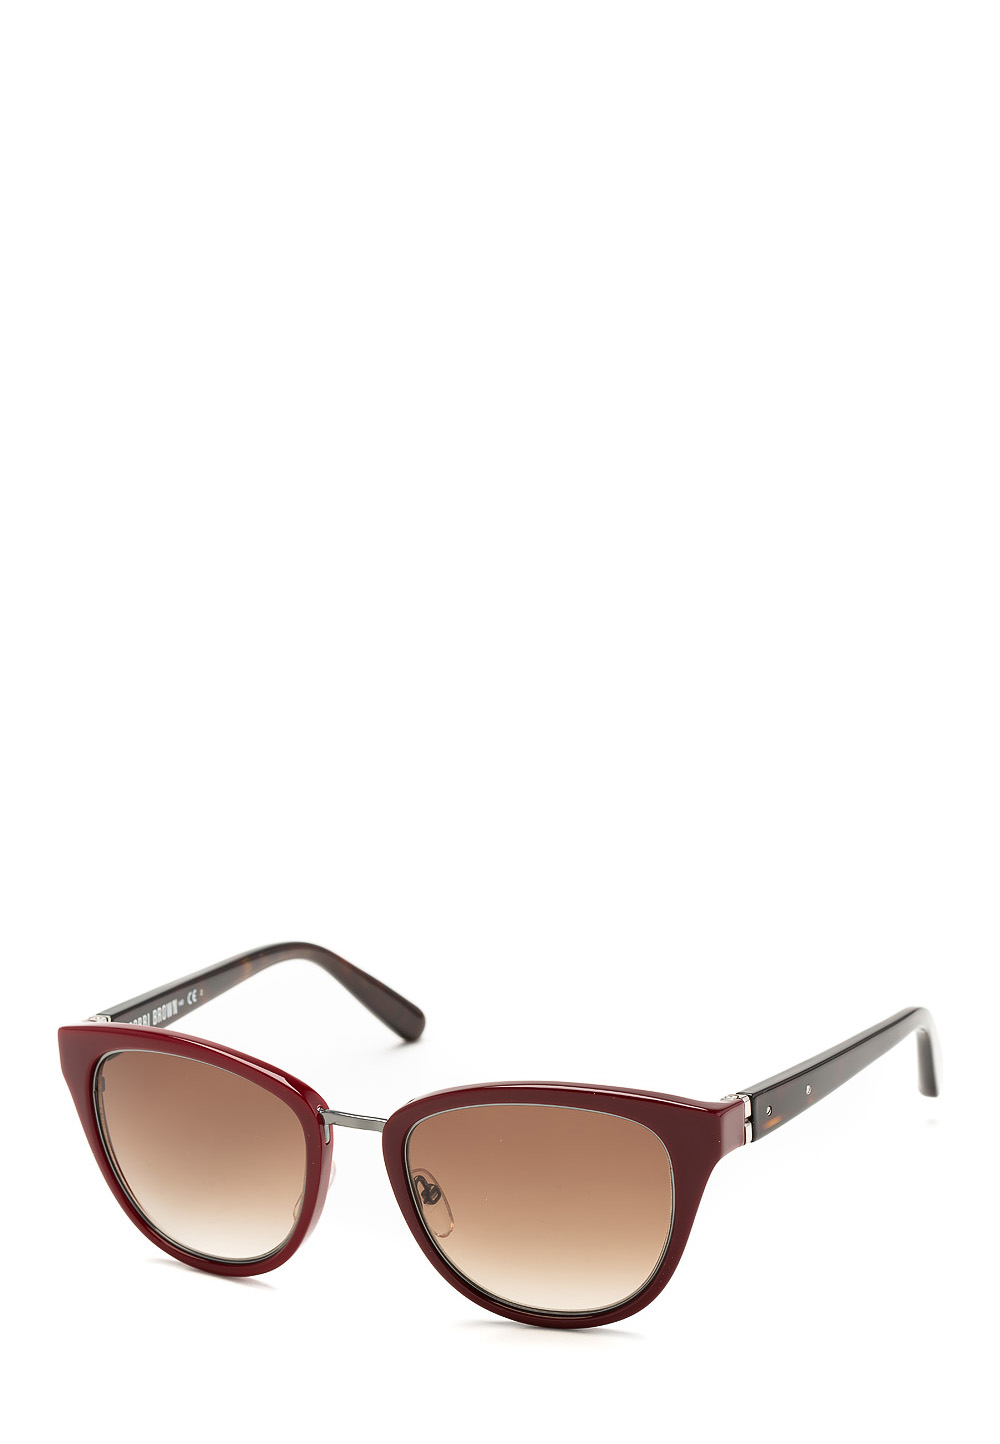 Bobbi Brown Sonnenbrille The Rowan, UV 400, rot/braun